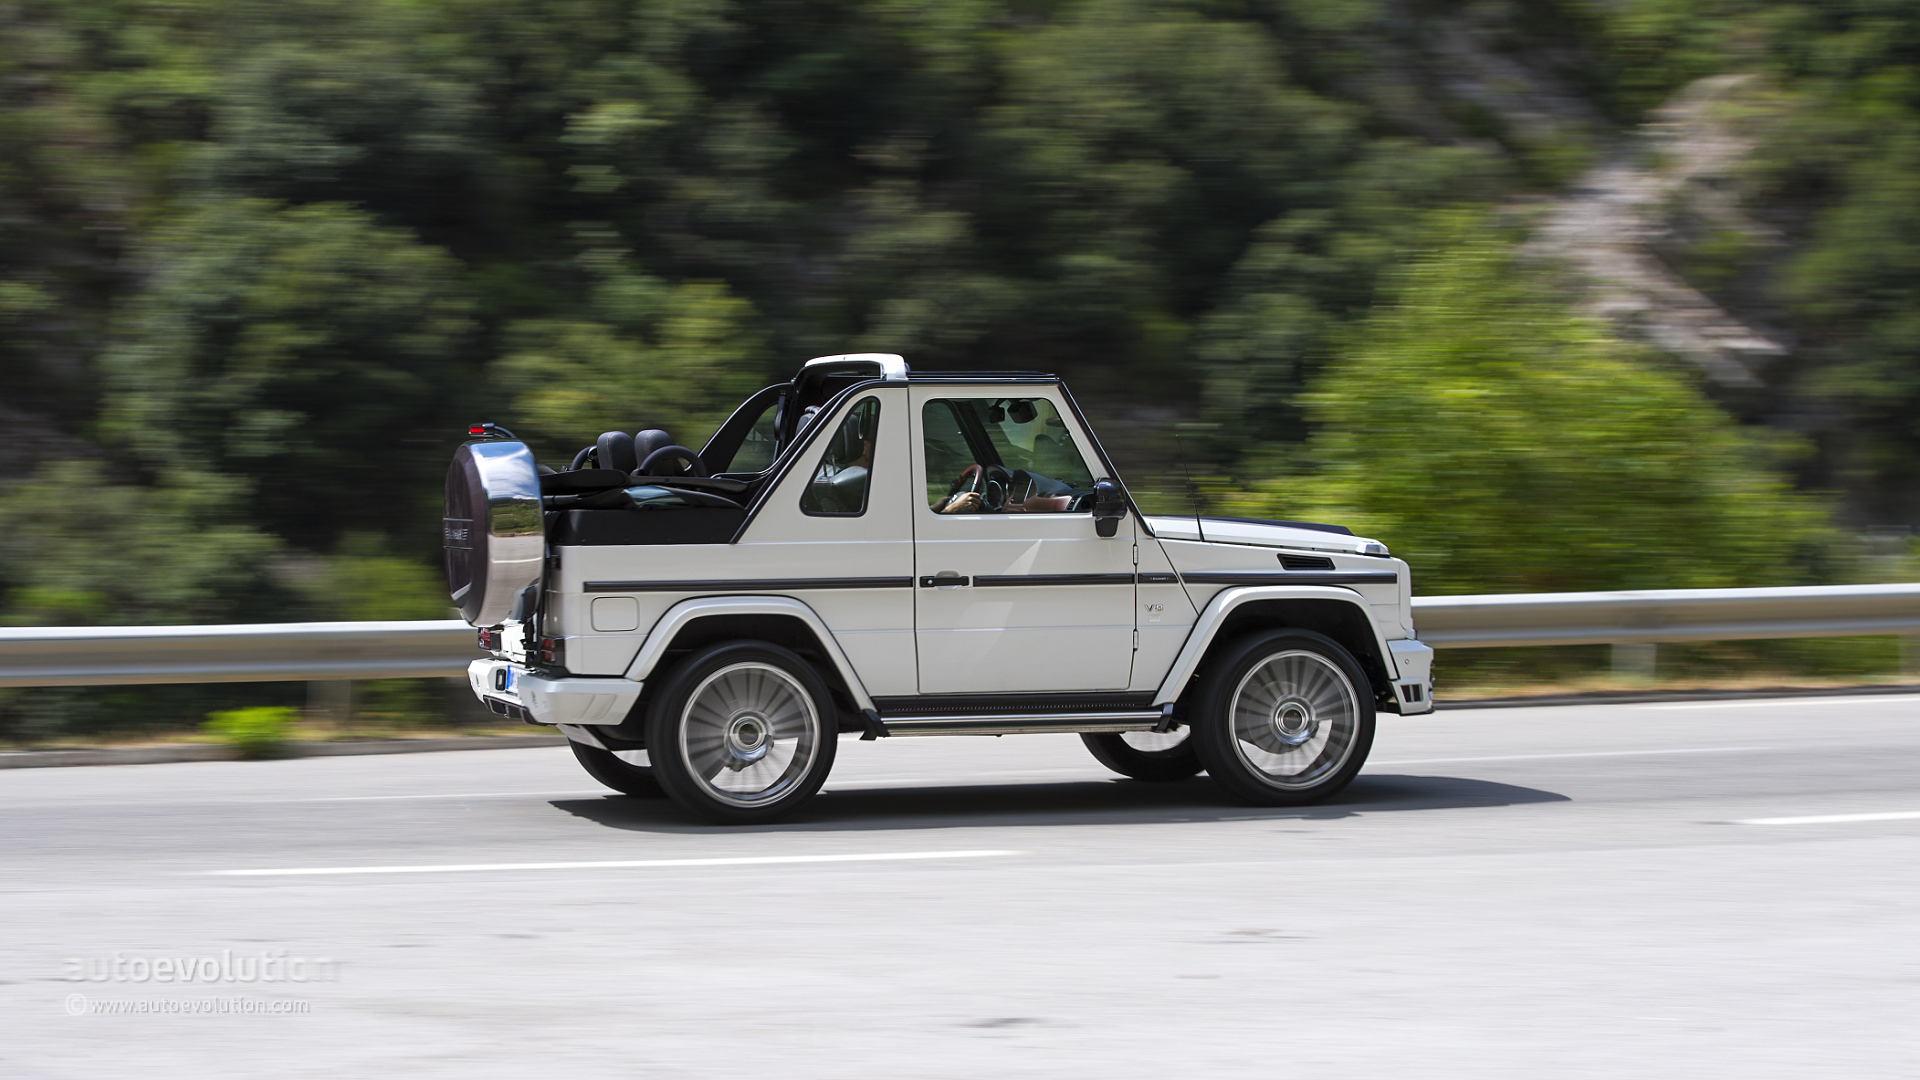 Mercedes benz g500 cabriolet review autoevolution for Who owns mercedes benz now